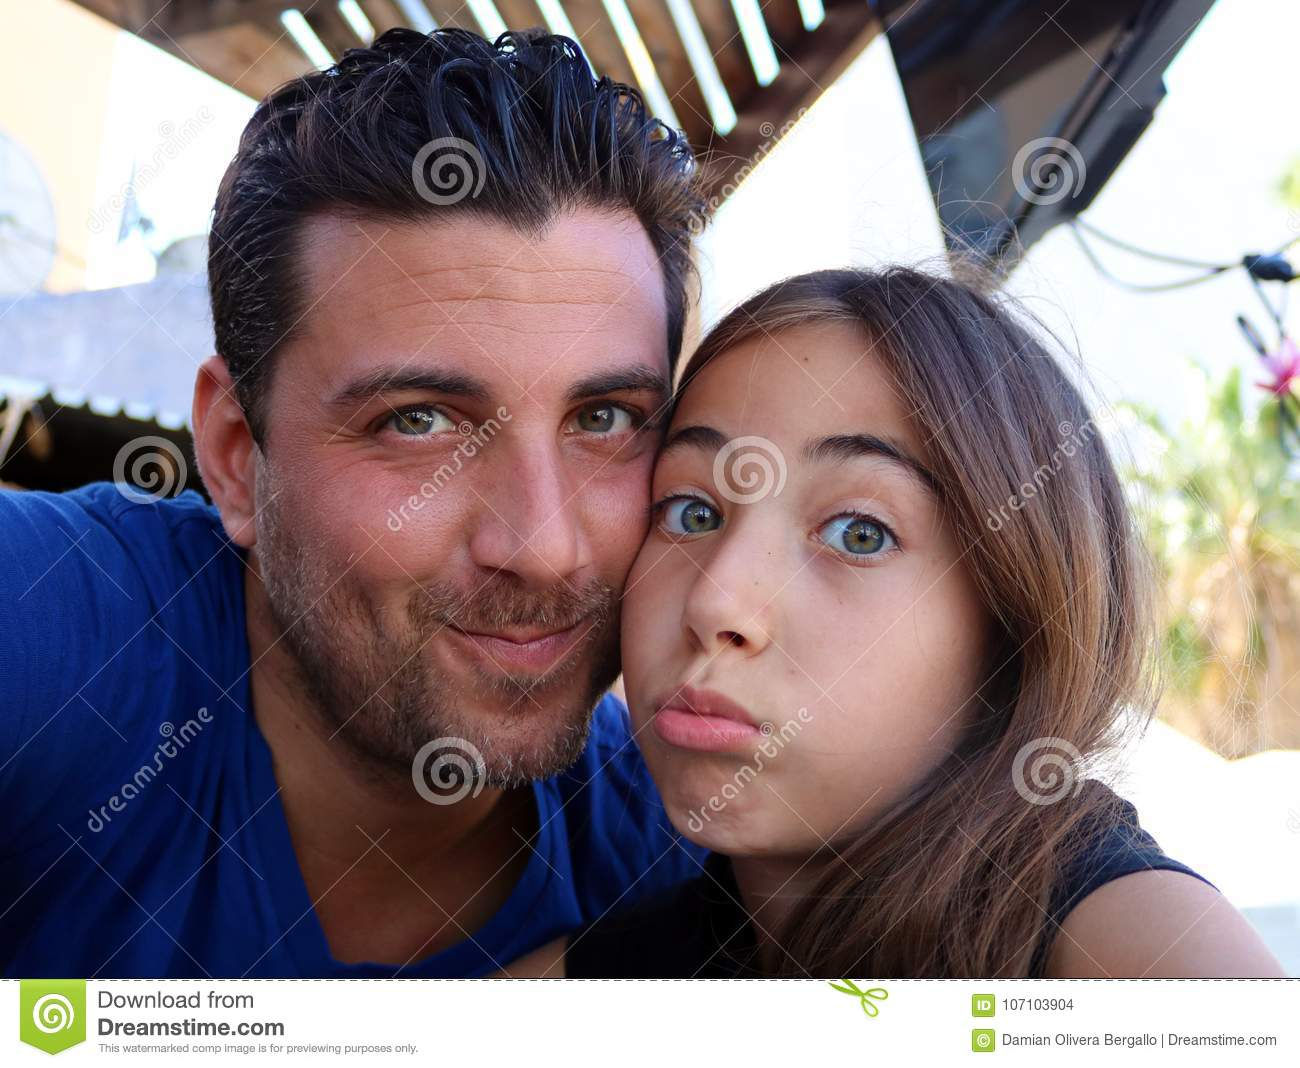 Father and daughter happy faces gorgeous portraits happiness family